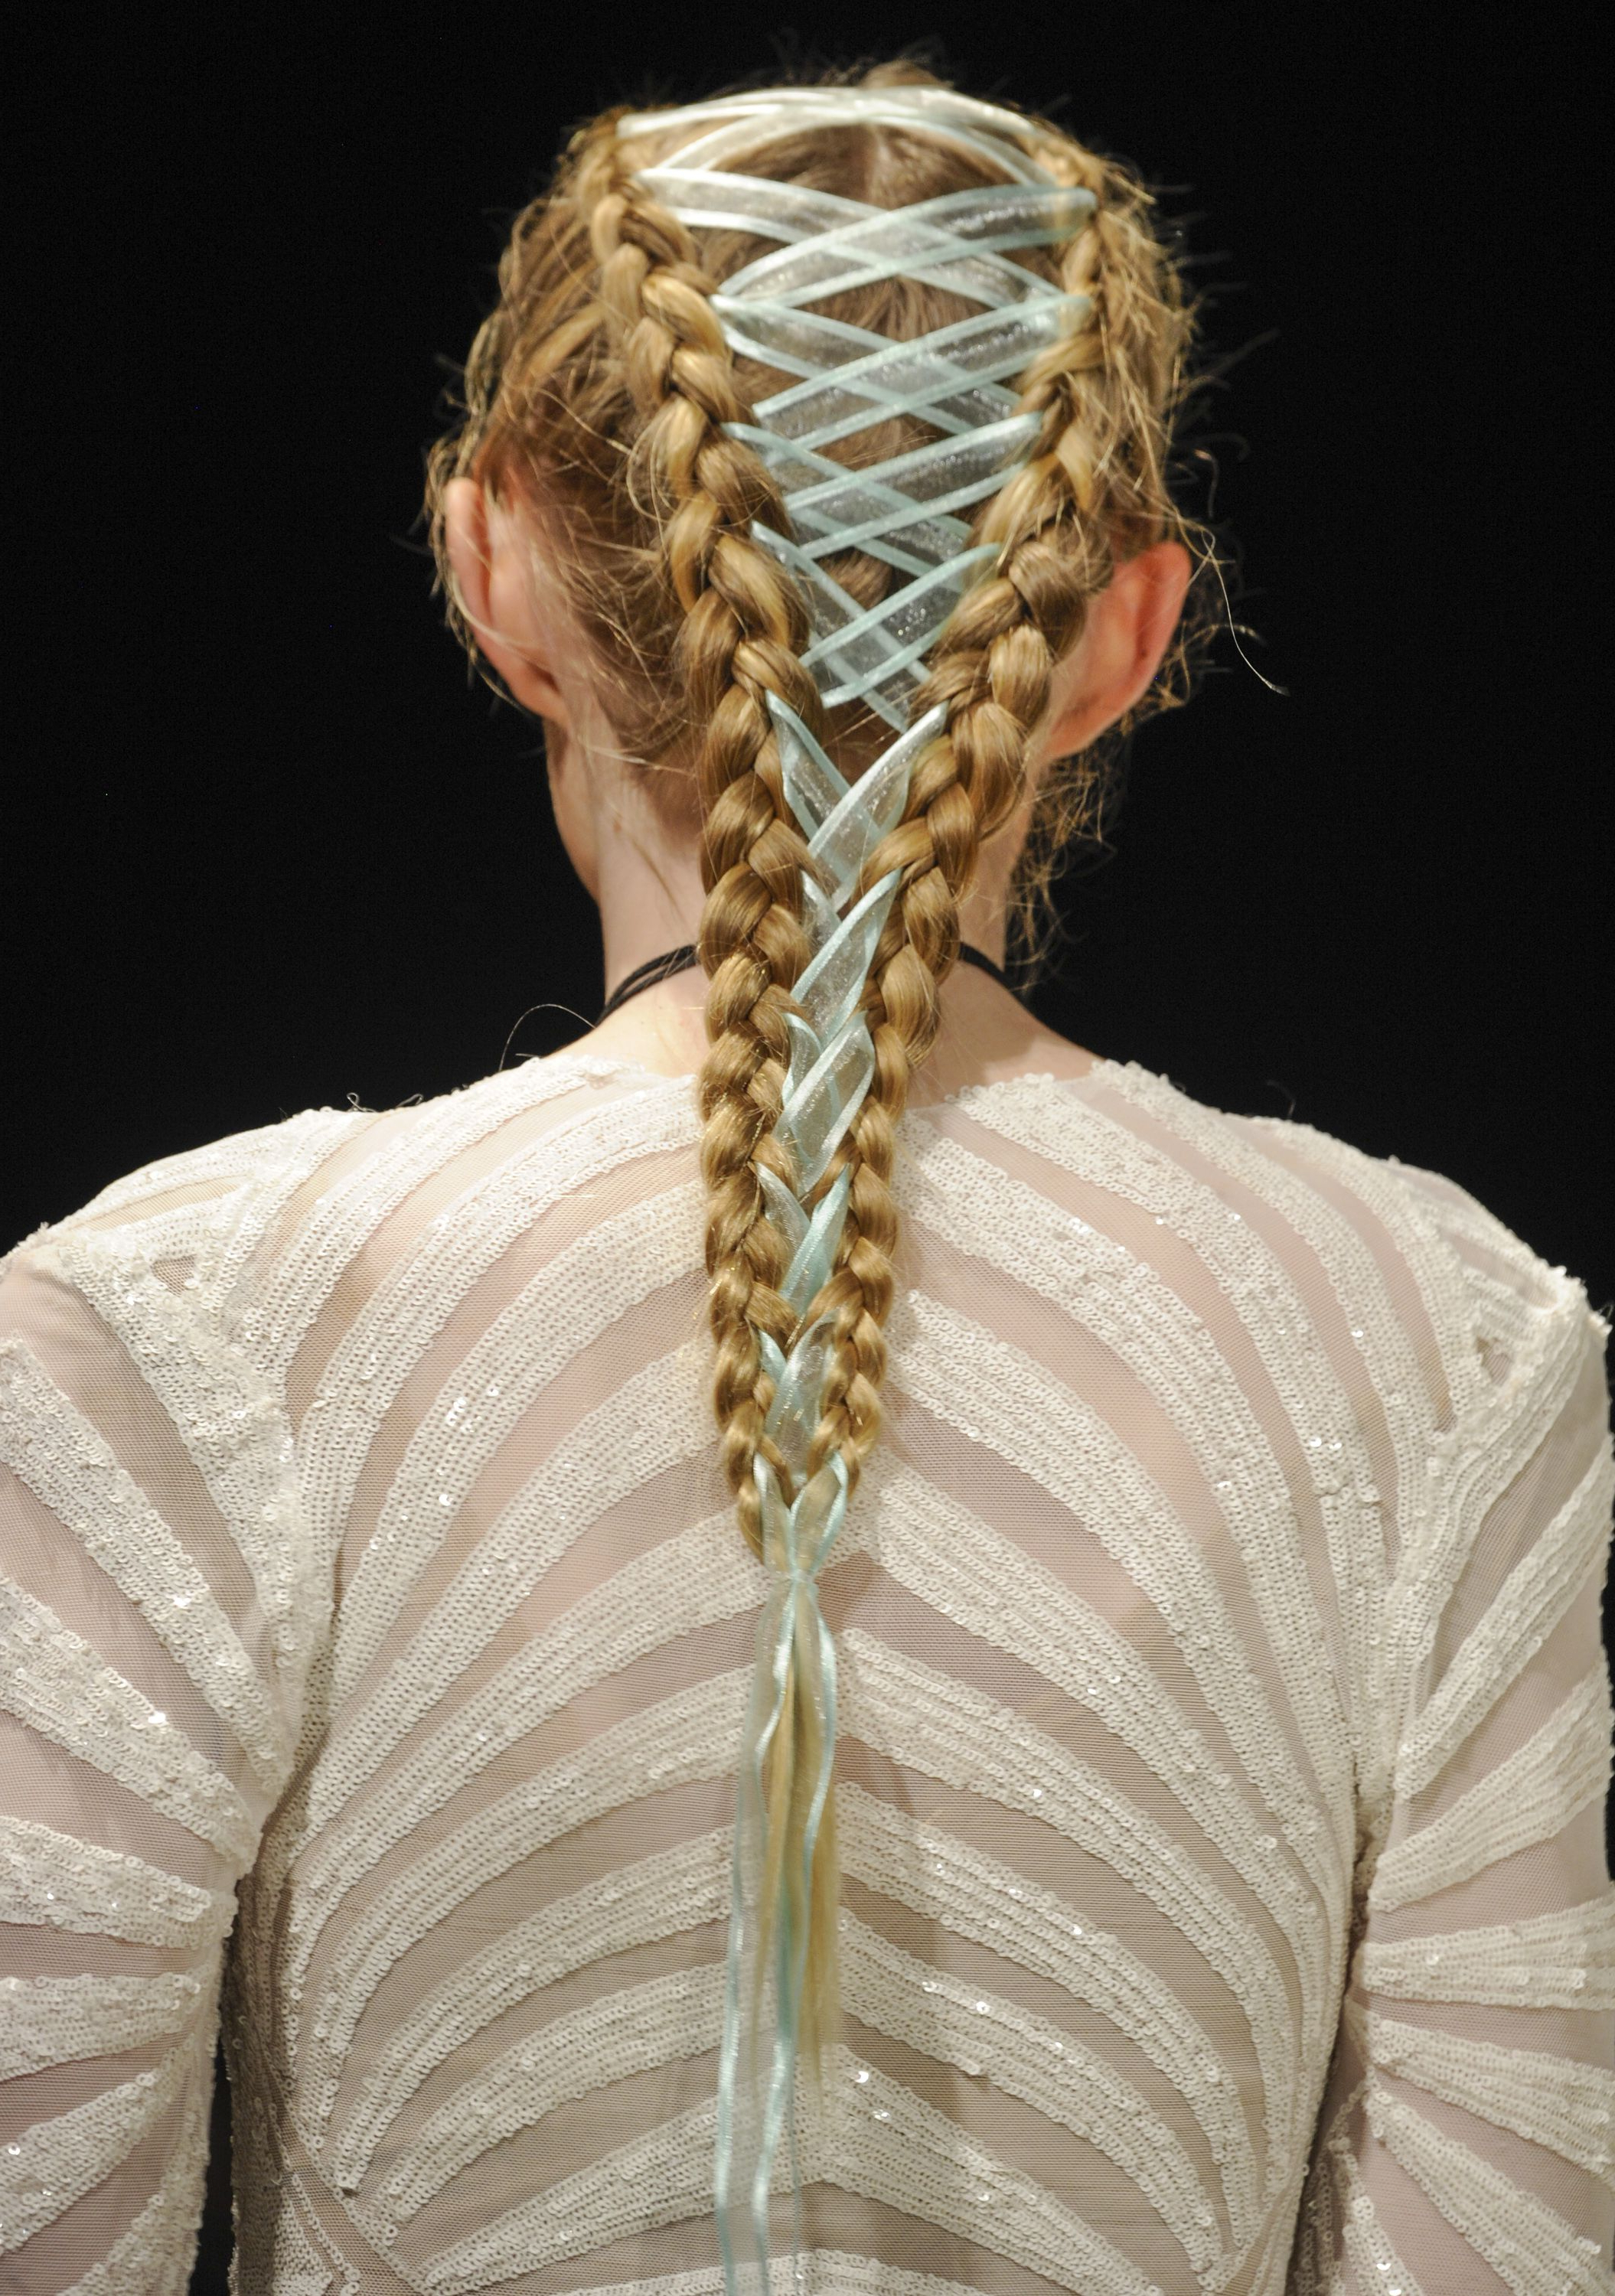 60 Easy Braided Hairstyles – Cool Braid How To's & Ideas With Regard To Favorite Corset Braided Hairstyles (View 18 of 20)